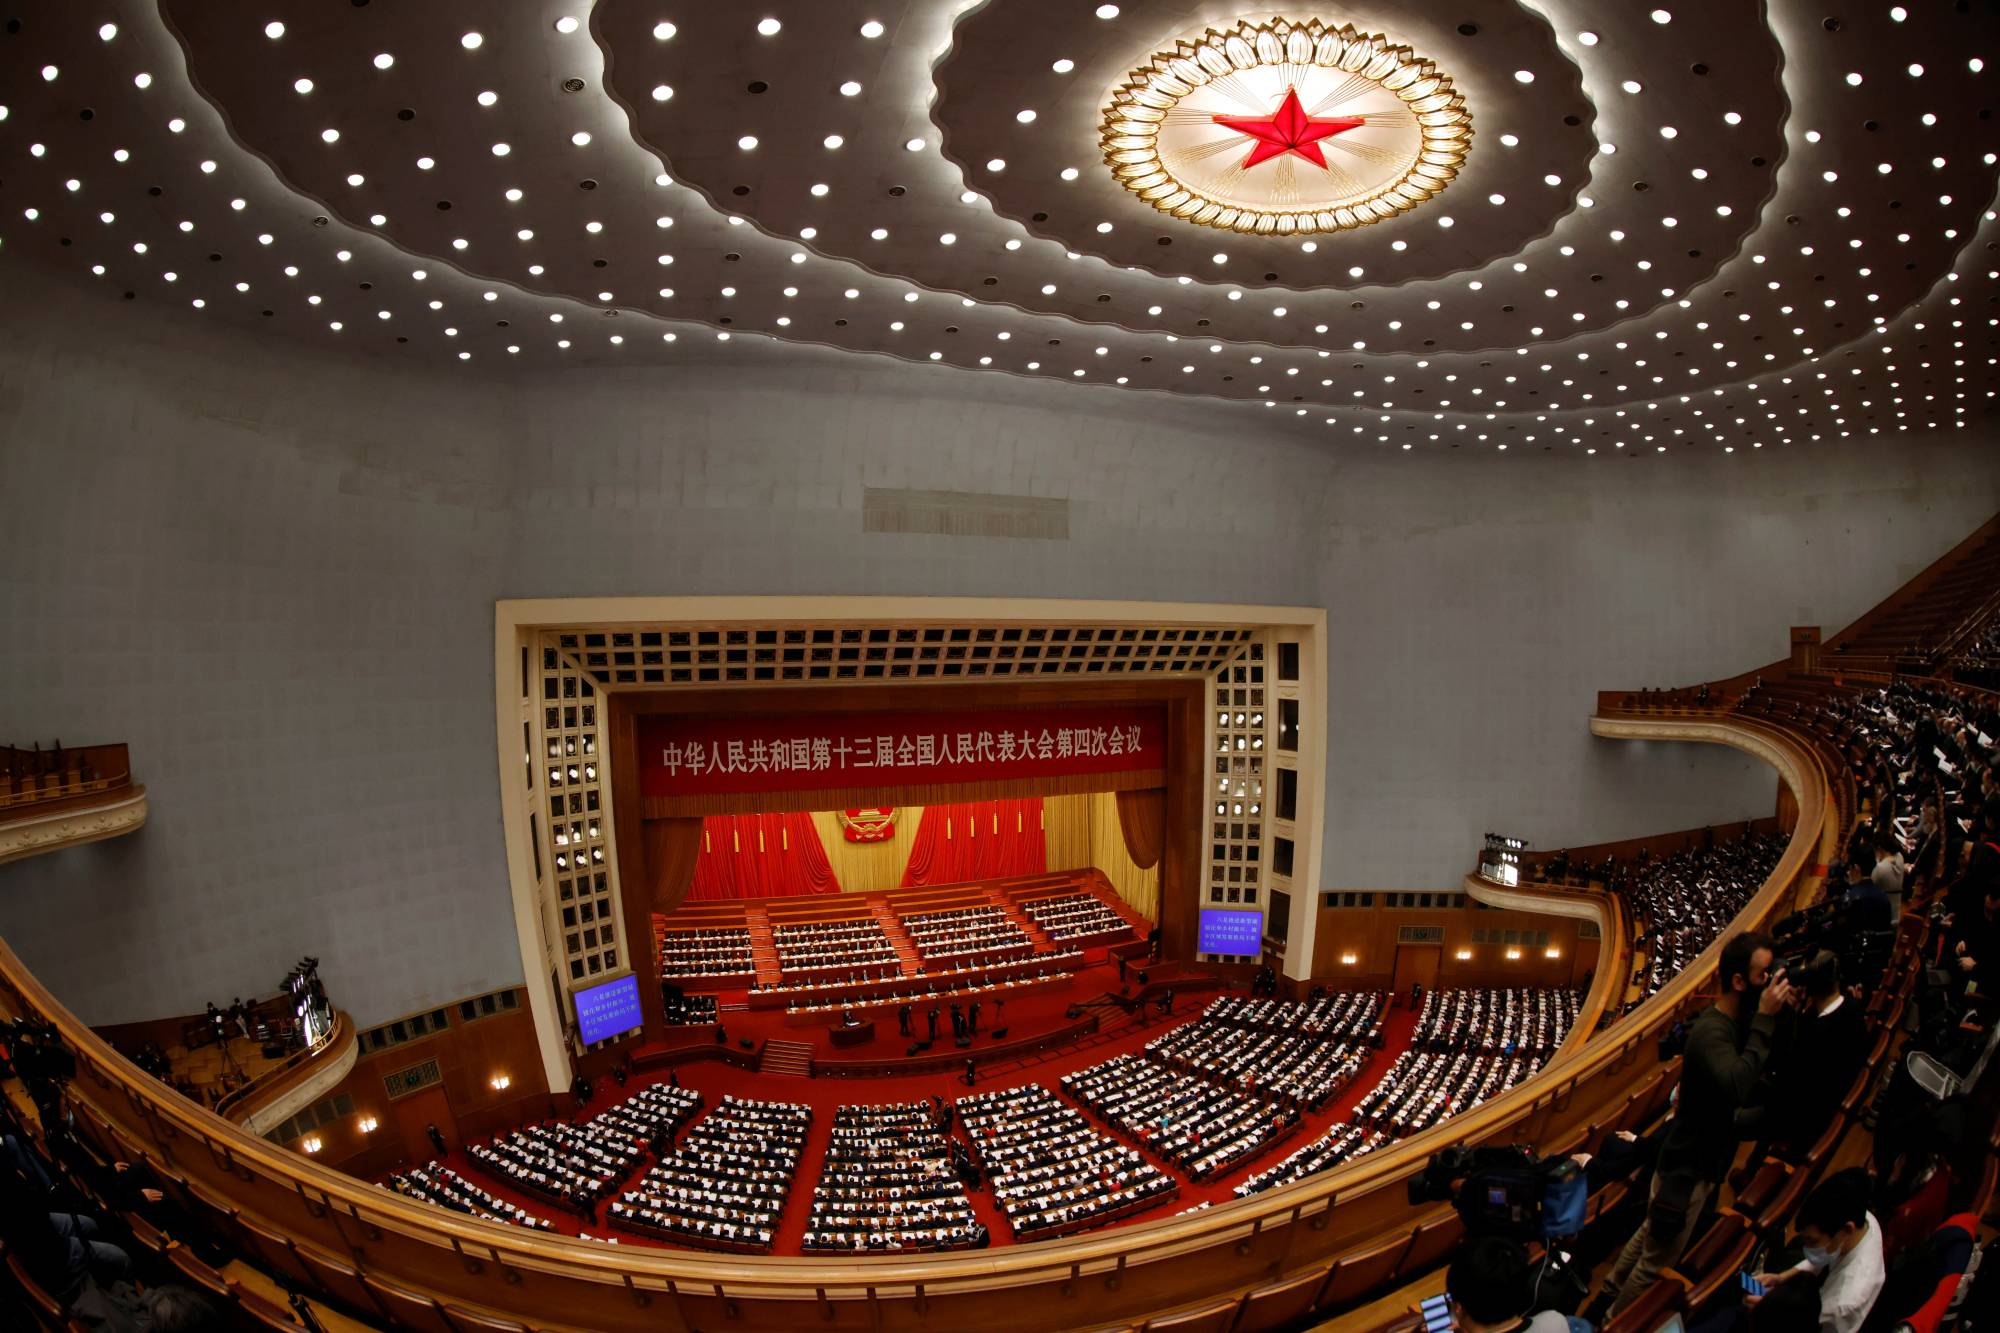 Chinese leaders and delegates attend the opening session of the National People's Congress at the Great Hall of the People in Beijing on Friday. | REUTERS